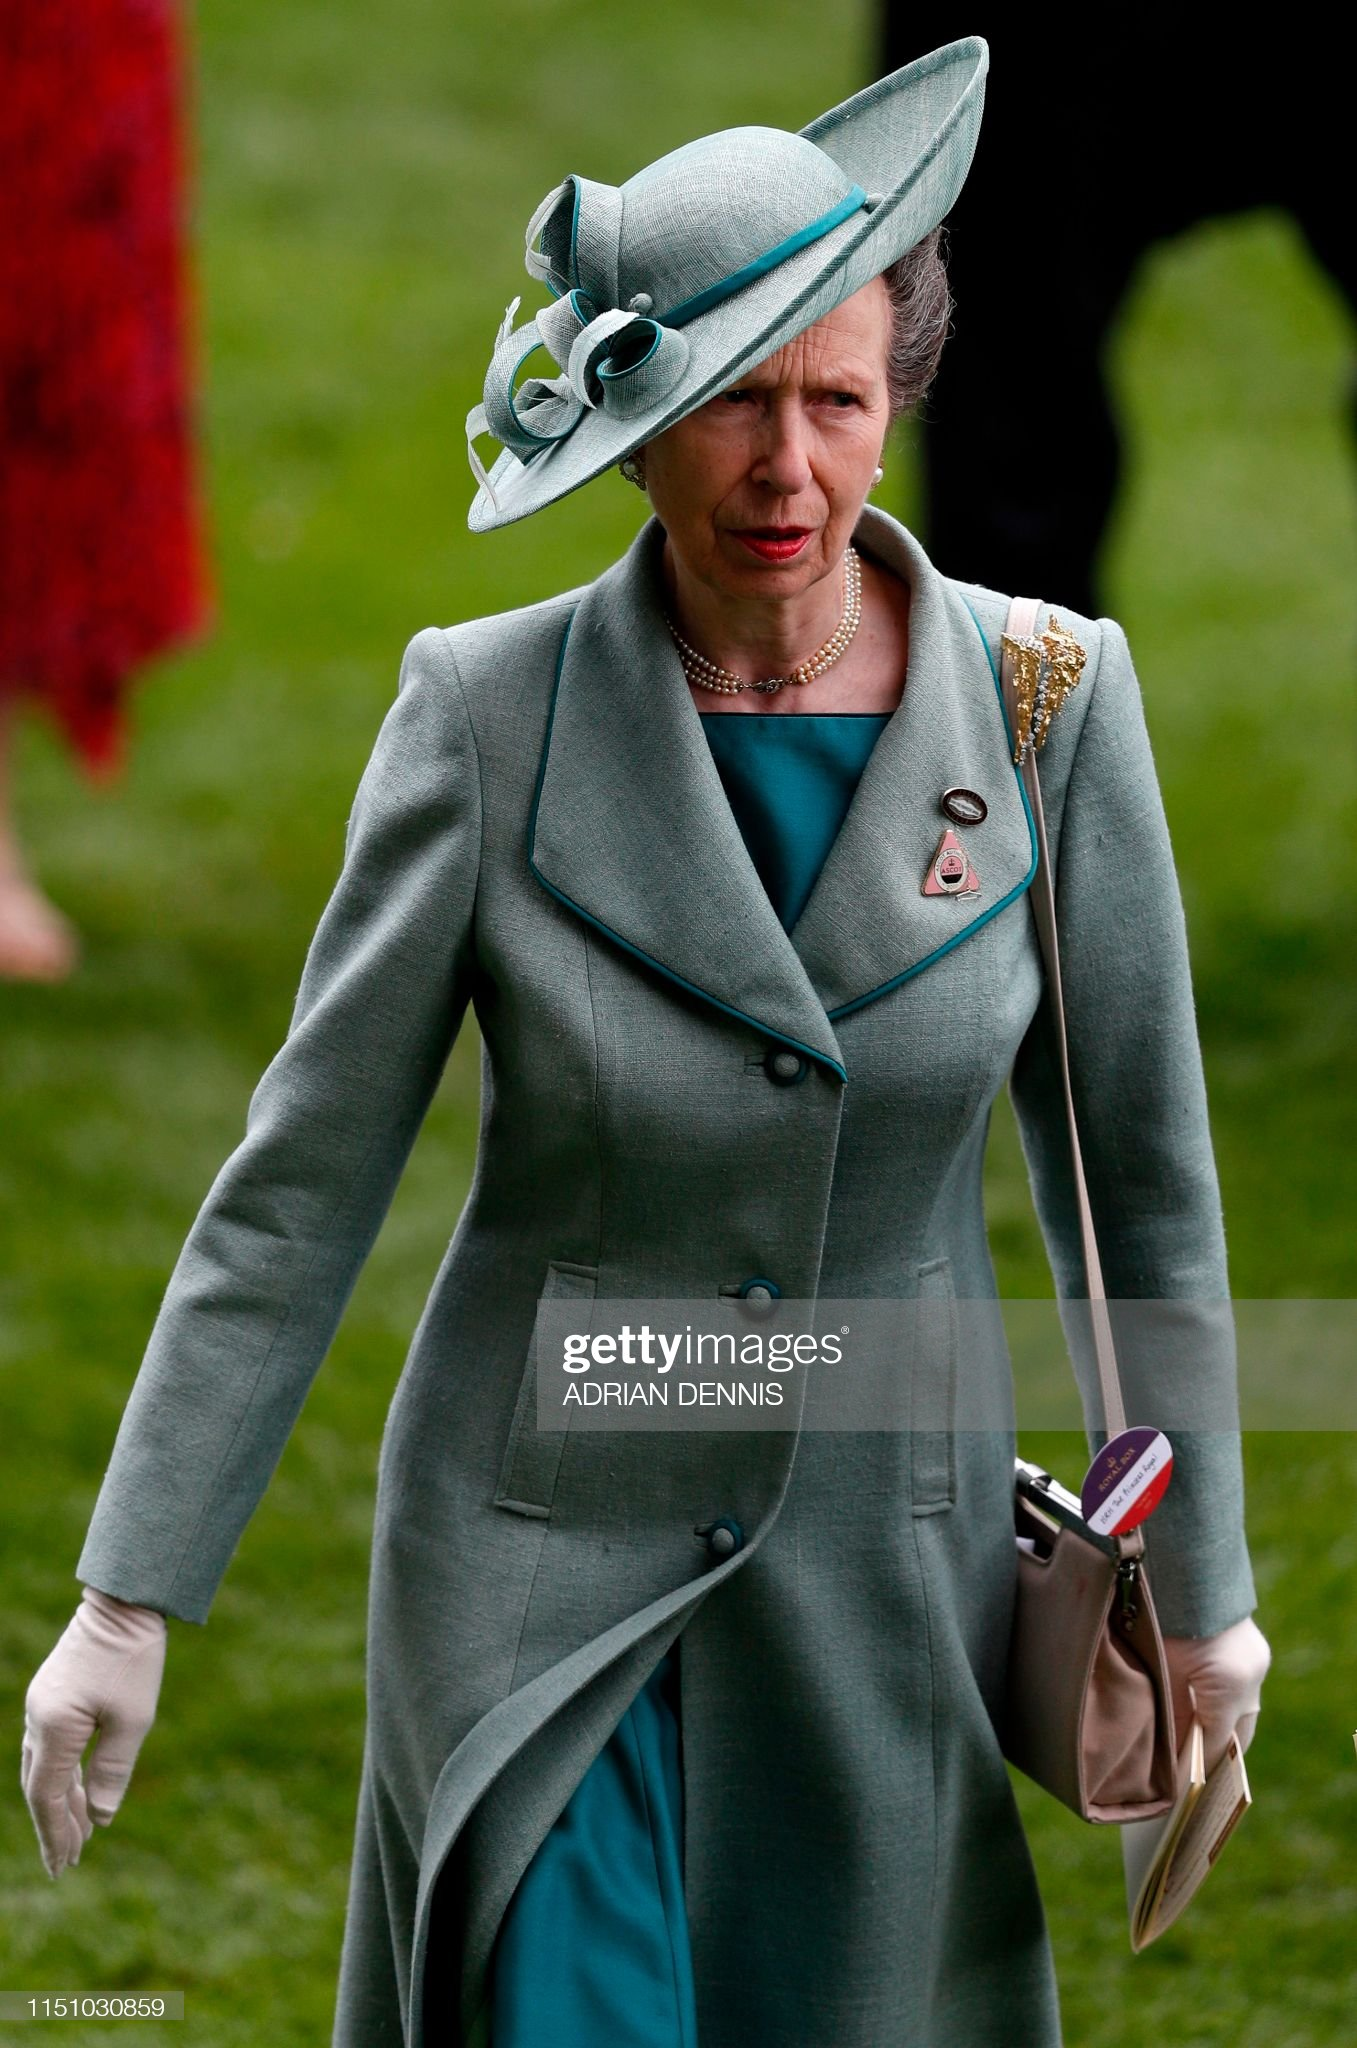 Royal Jewels of the World Message Board: Re: Ascot - Day 3